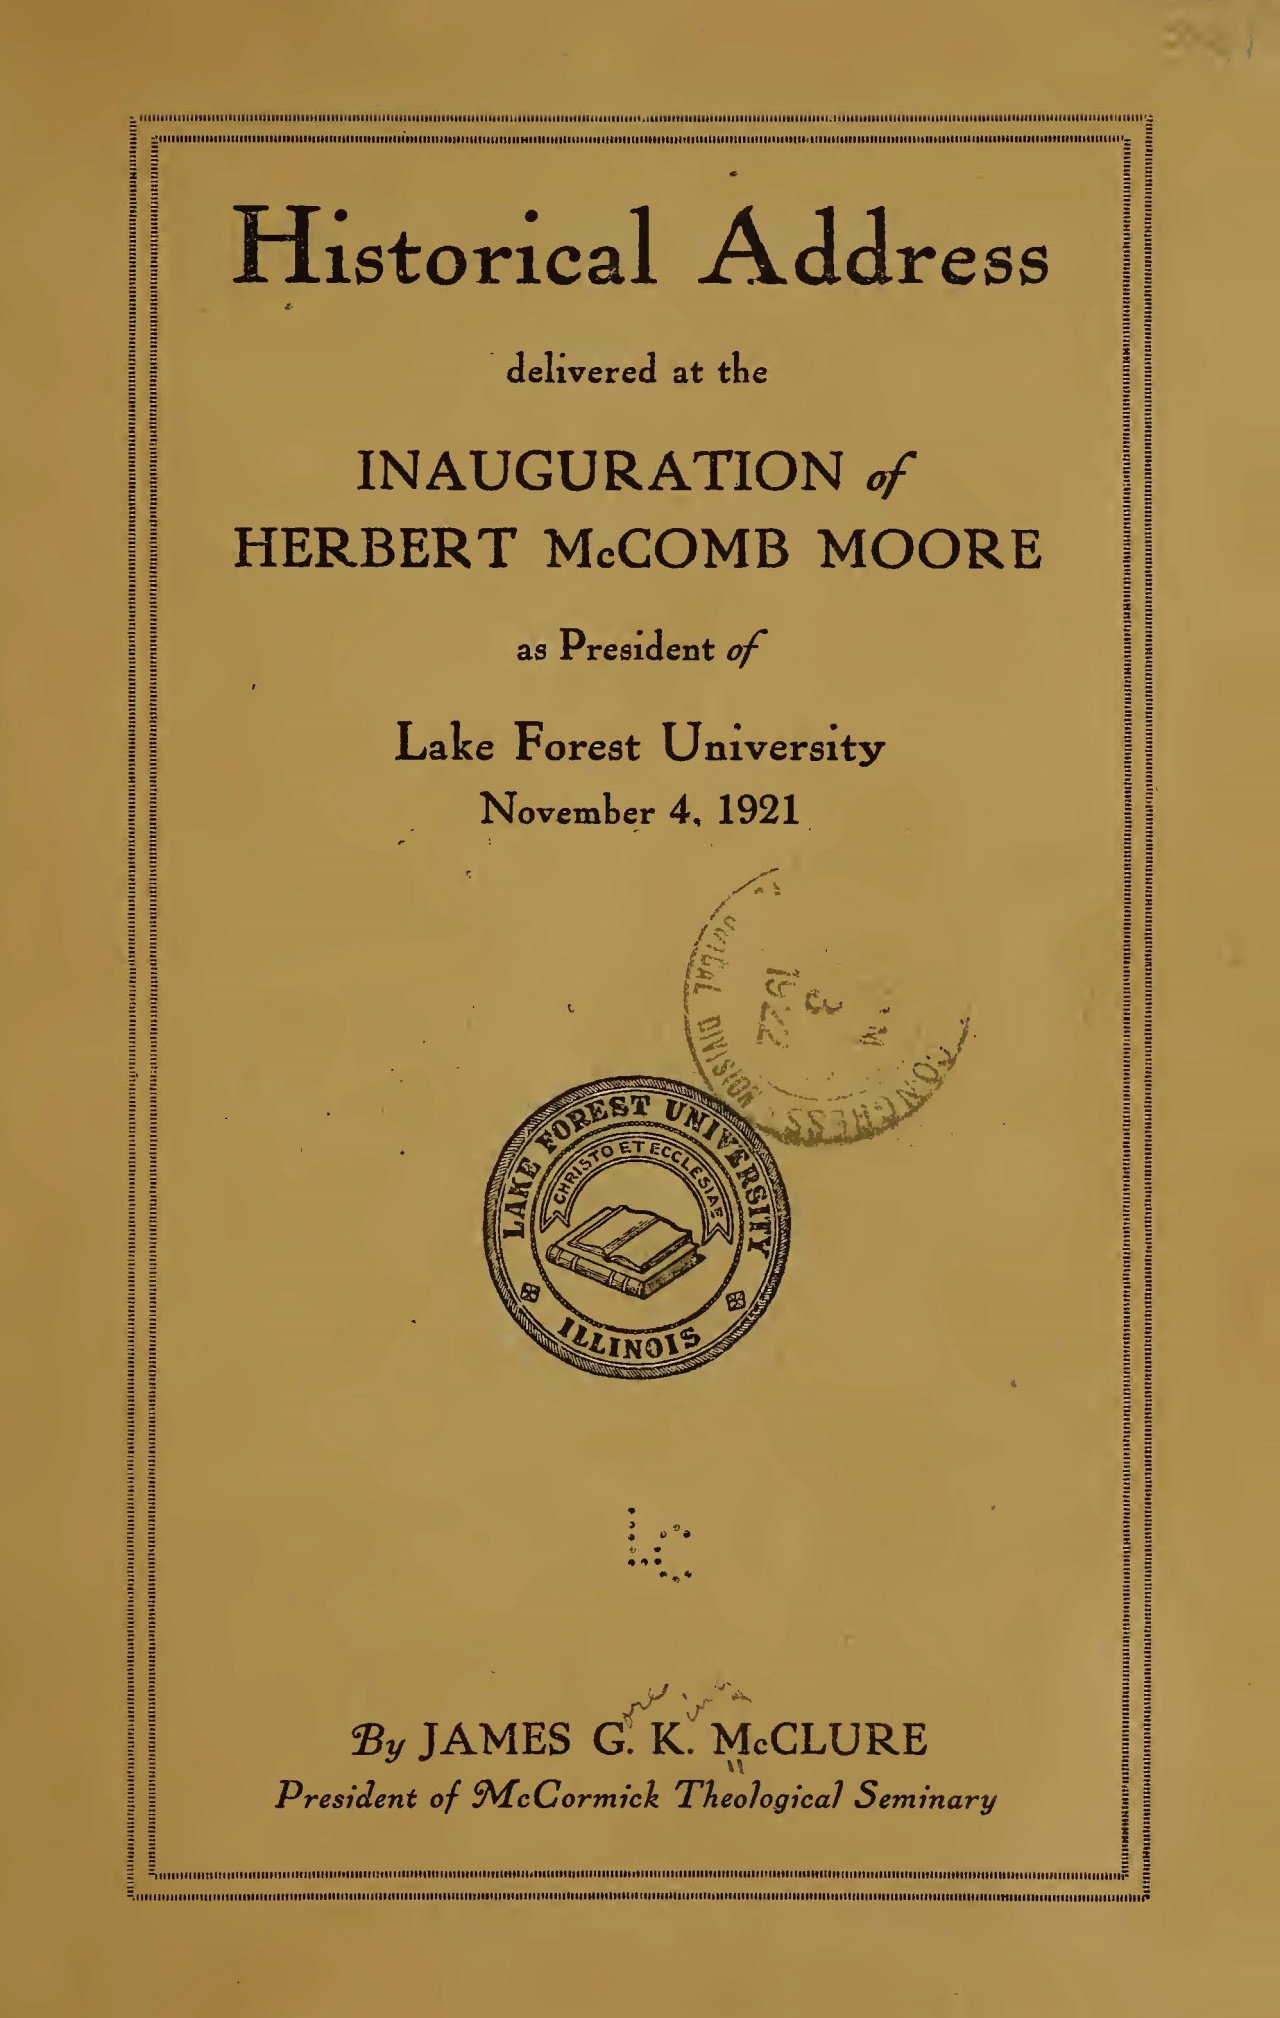 McClure, Sr., James Gore King, Historical Address Title Page.jpg